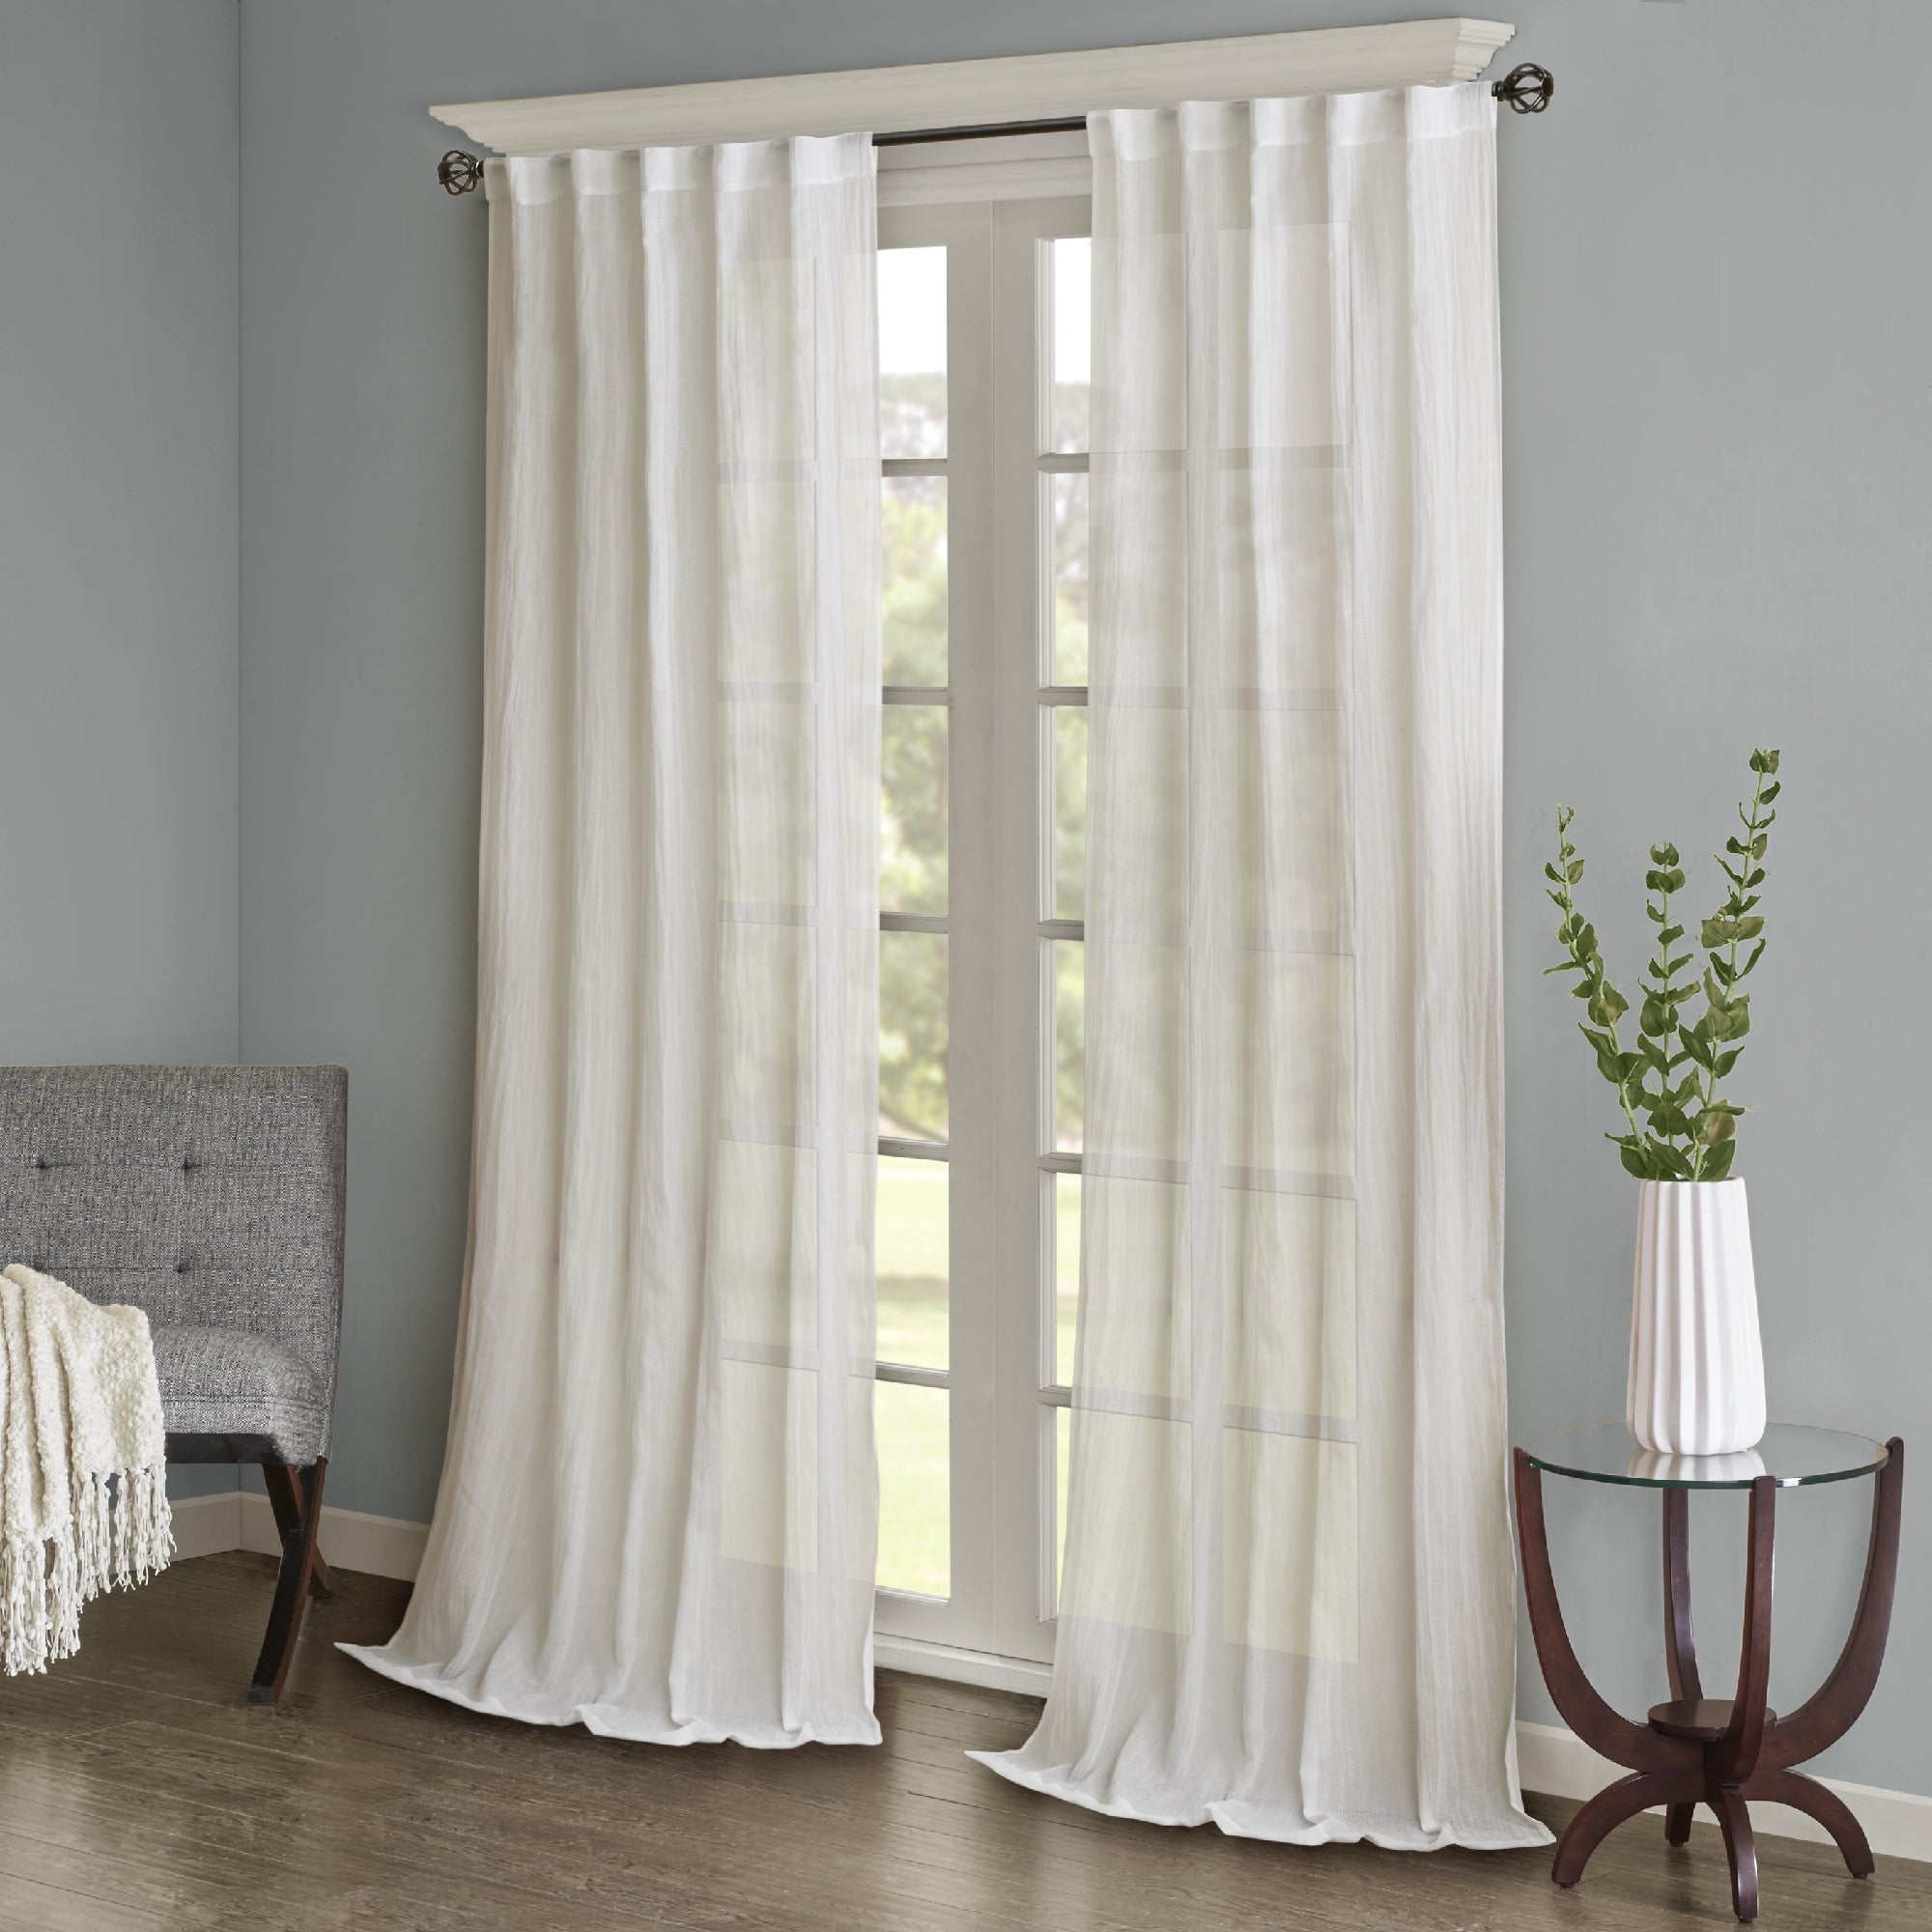 Madison Park Kaylee Solid Crushed Sheer Window Curtain Pair Intended For Recent Kaylee Solid Crushed Sheer Window Curtain Pairs (View 2 of 20)